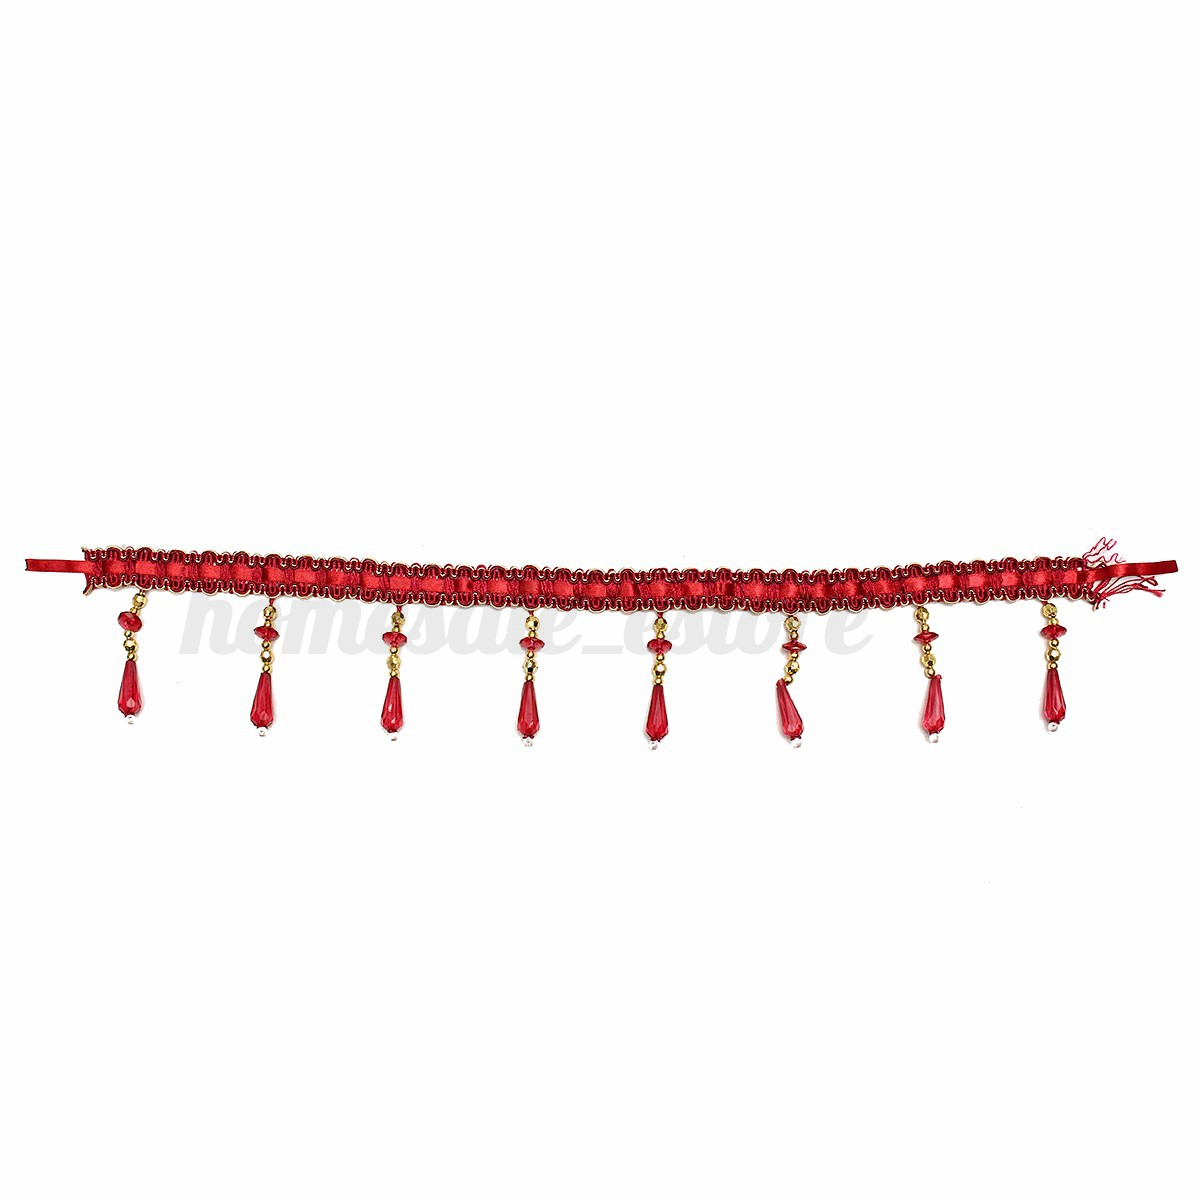 Home Crystal Beaded Curtains & Voiles Rope Tie Back Swags Decorative Holdbacks N